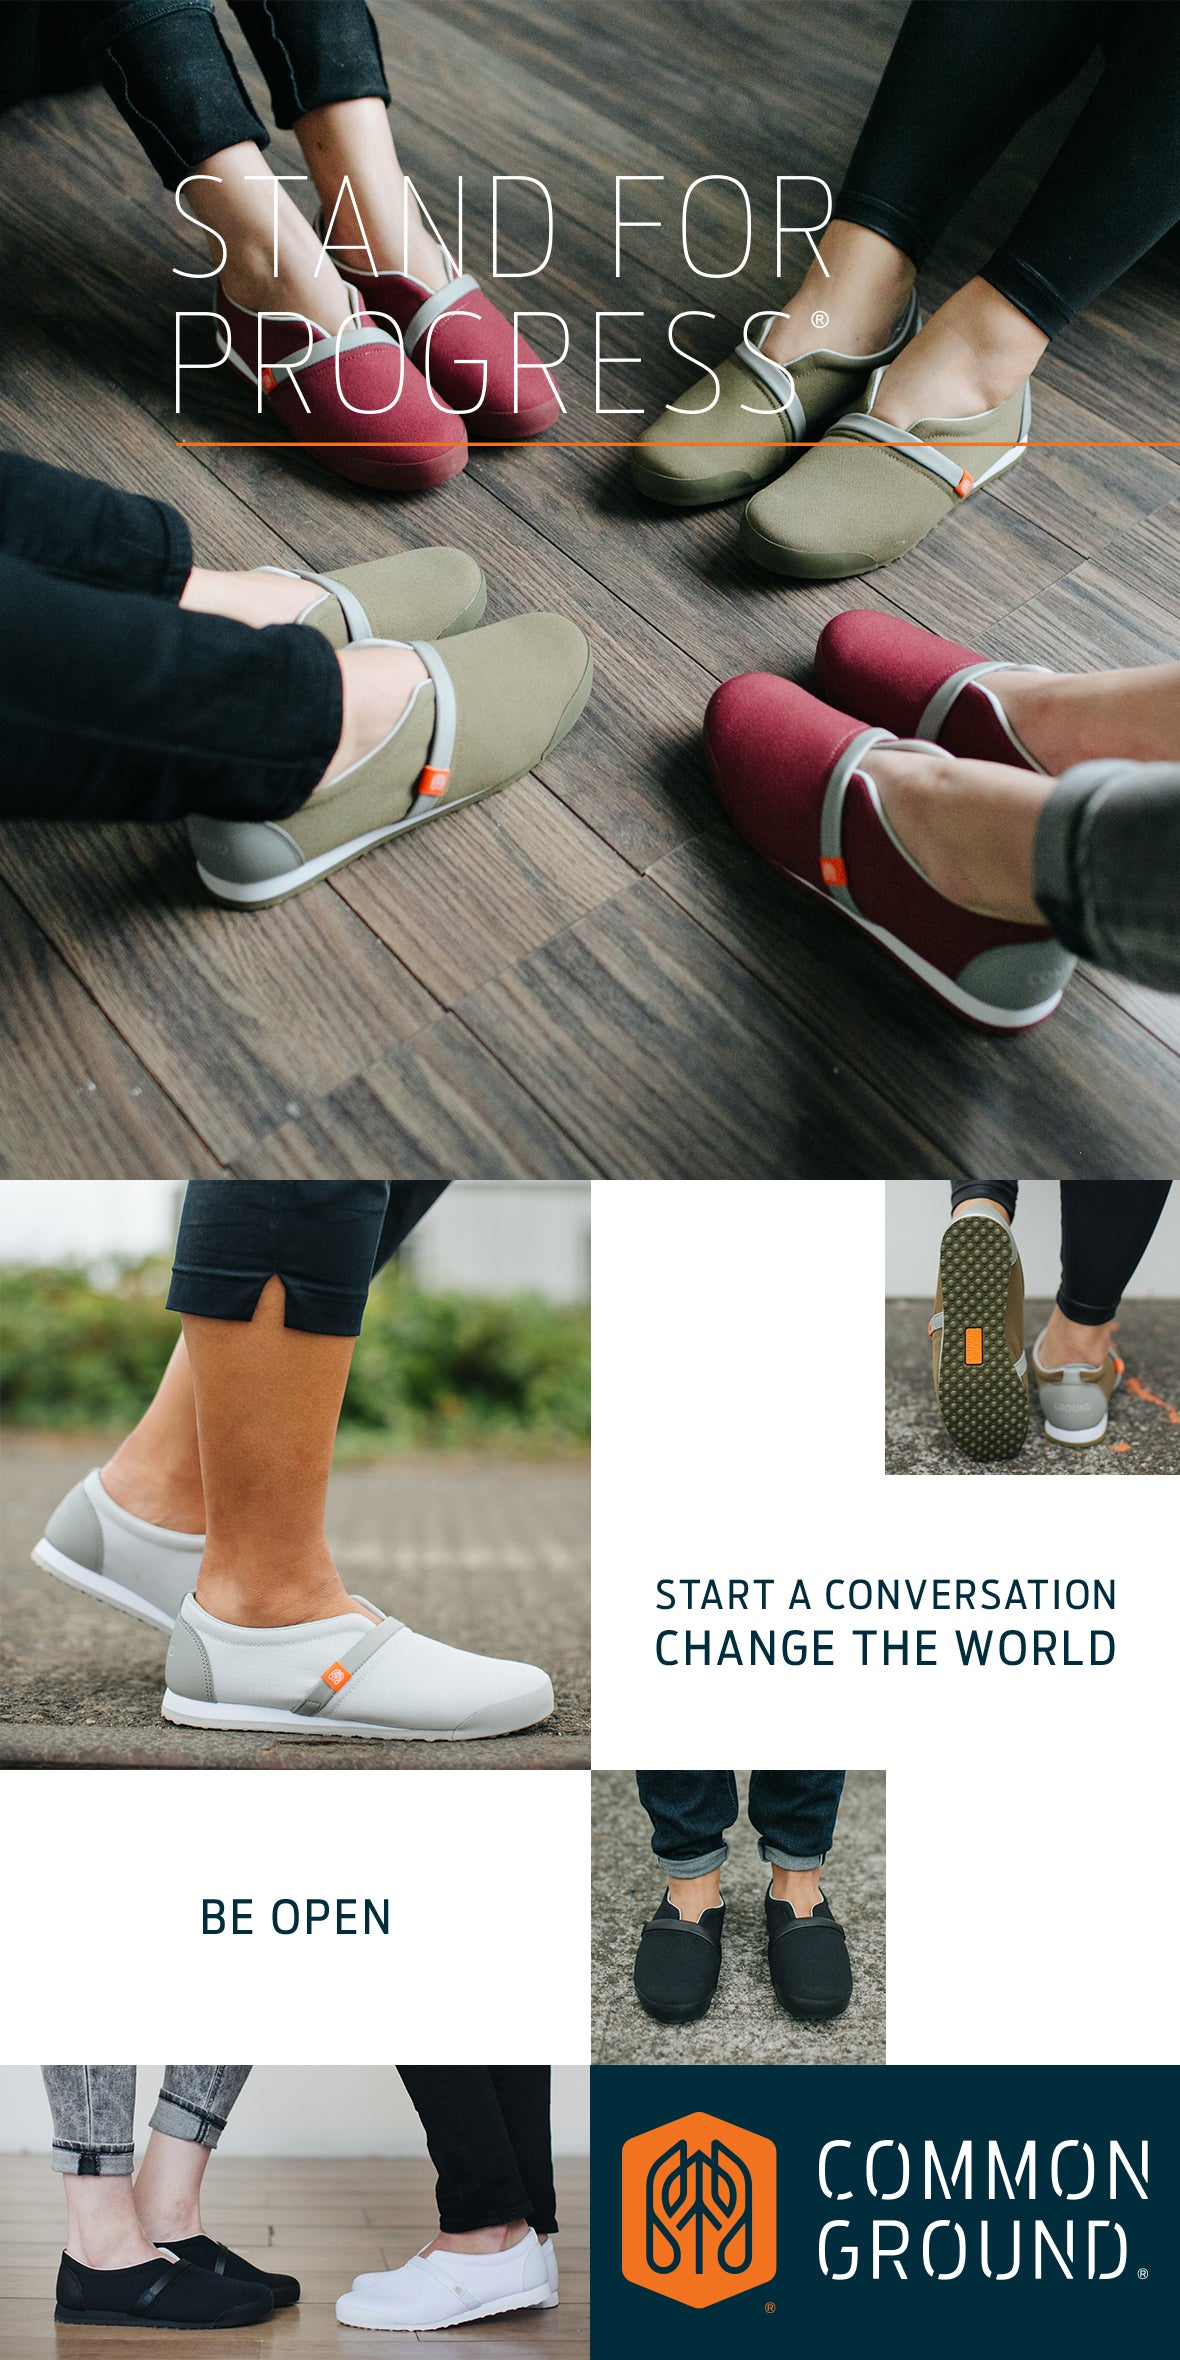 Common Ground Footwear | Progress Collection | #StandForProgress